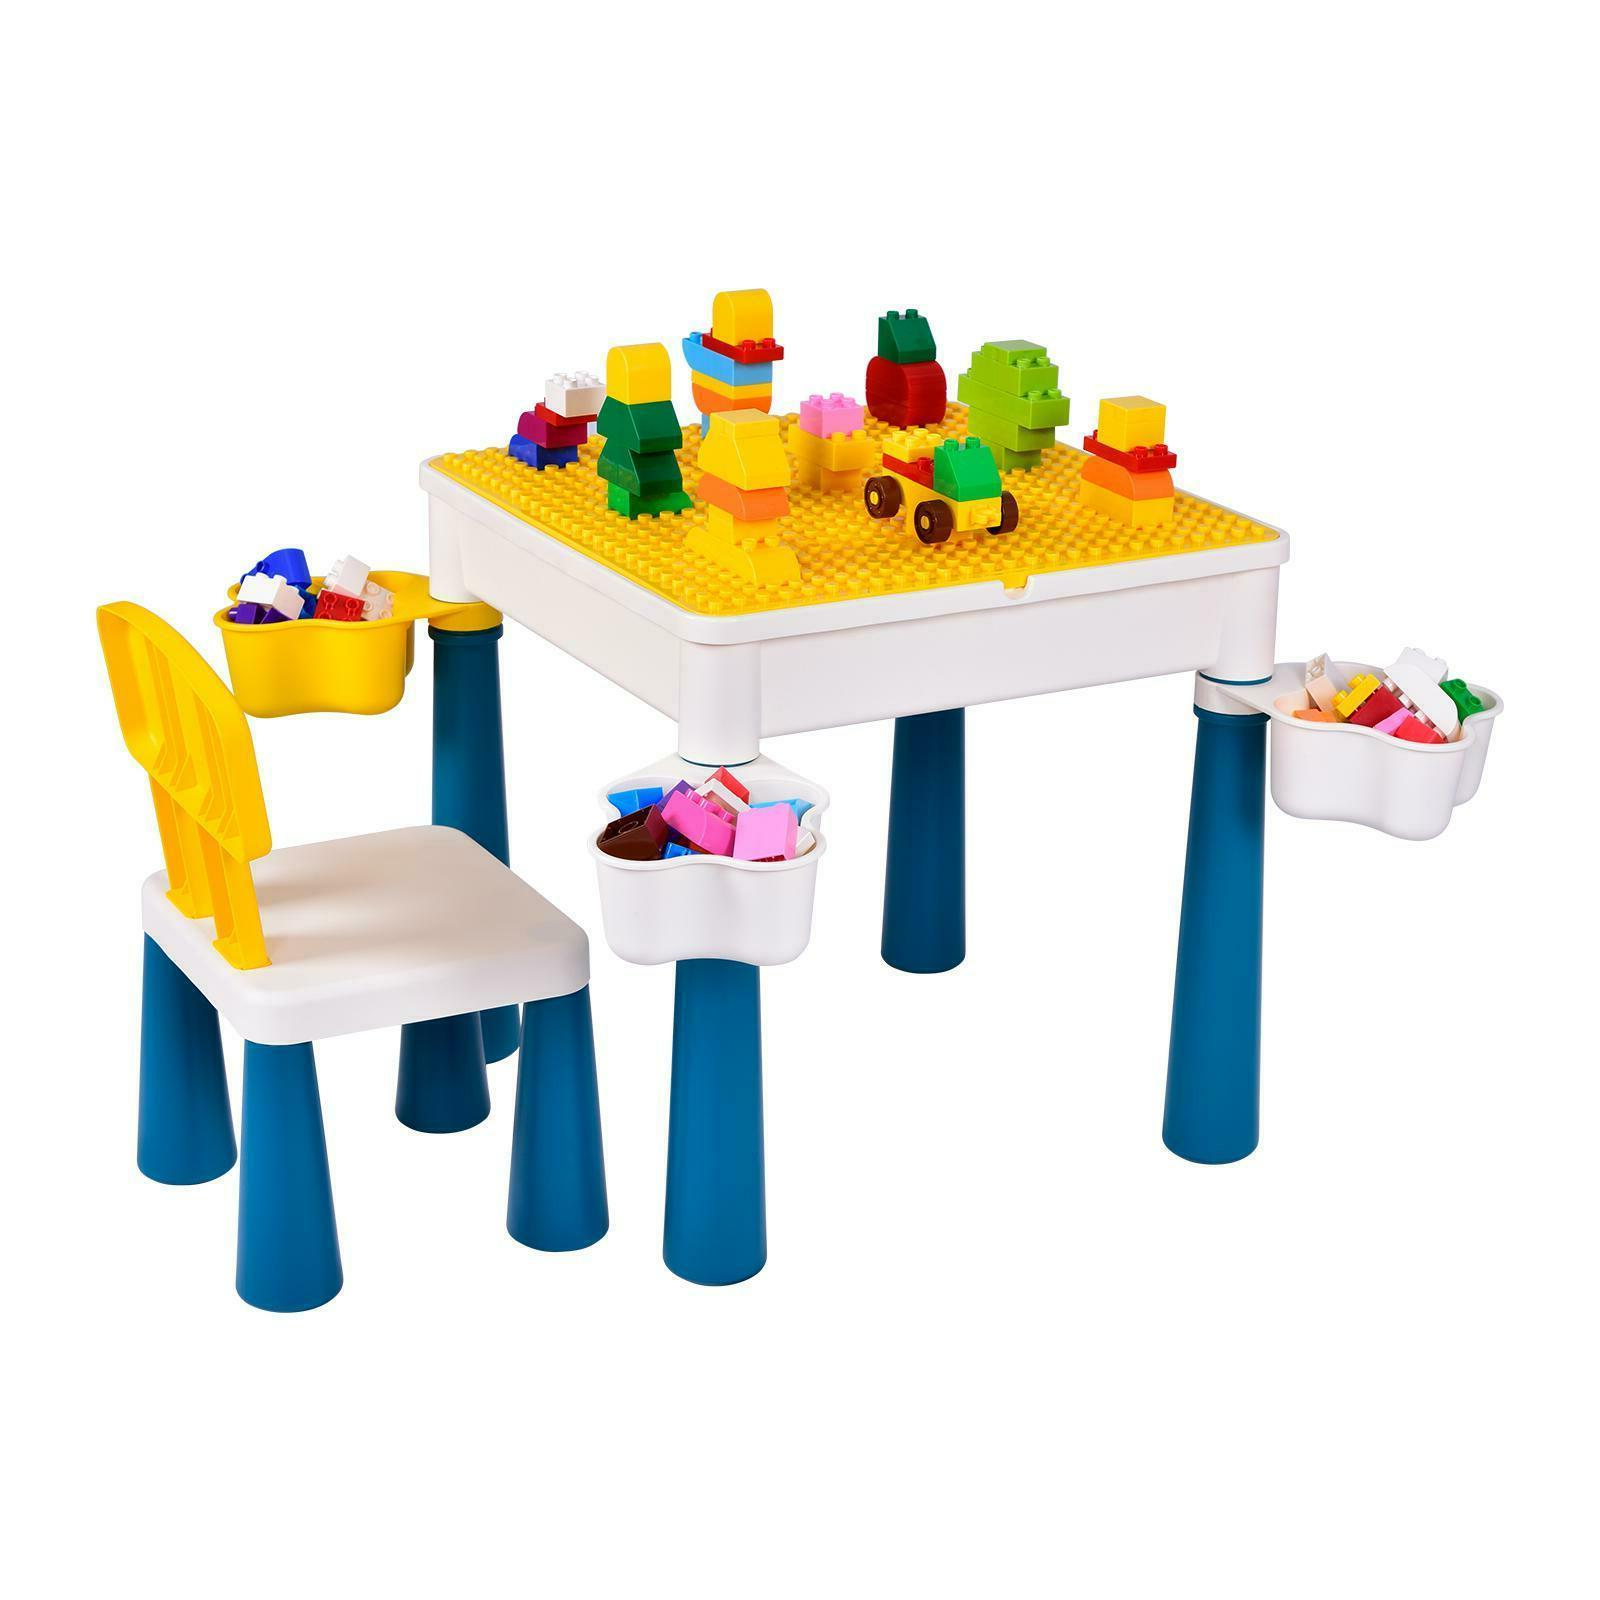 Activity Play For Block W/ Chair